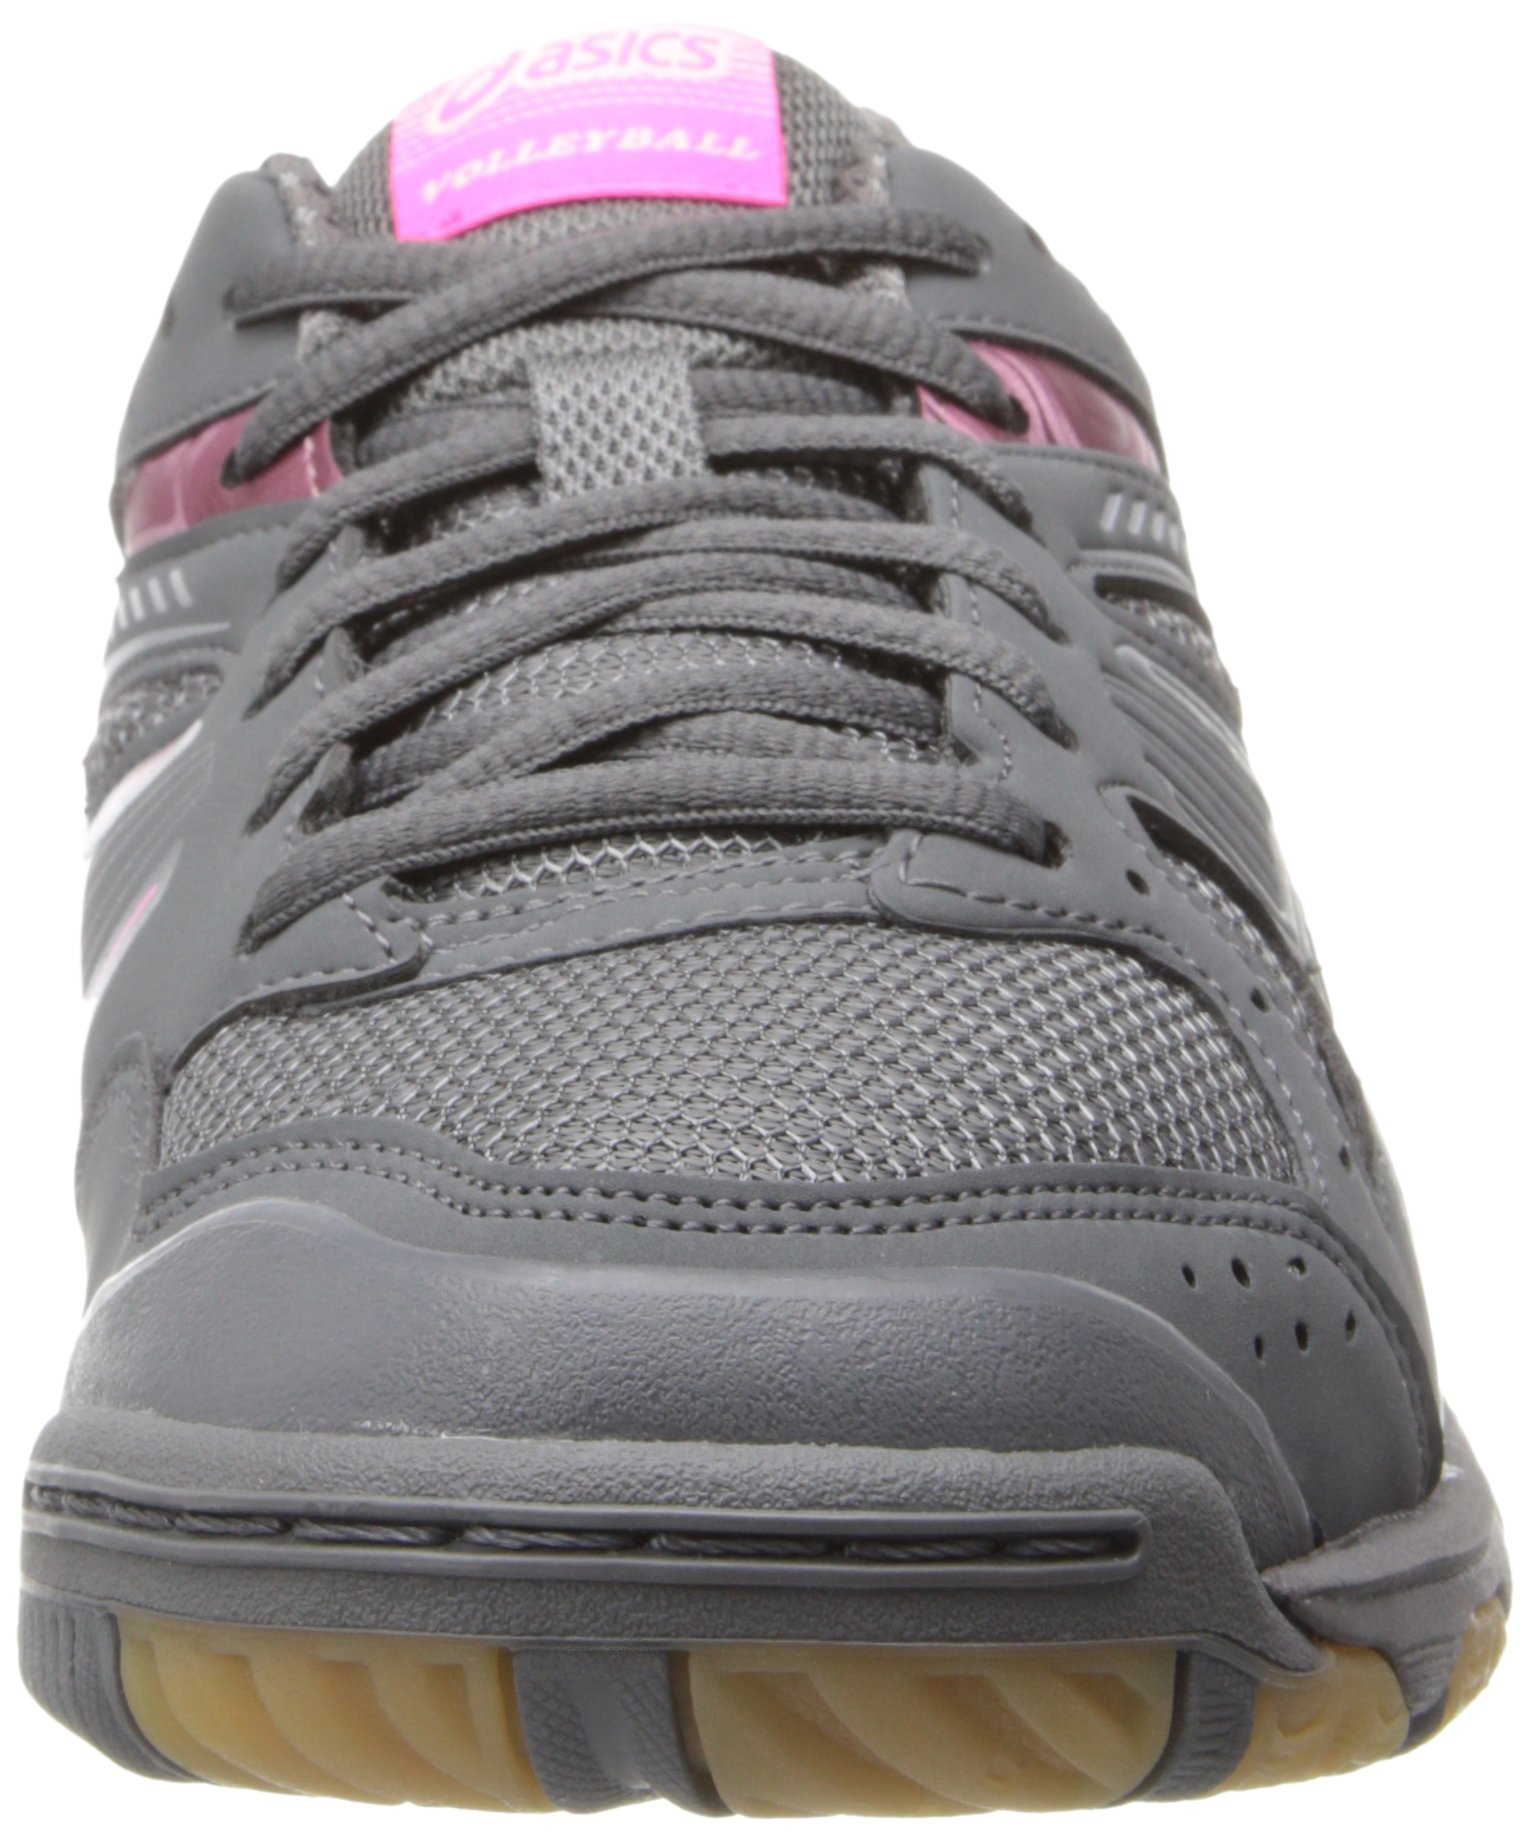 ASICS Women's Gel 1150V Volley Ball Shoe,Smoke/Knock Out Pink/Silver,8 M US by ASICS (Image #4)